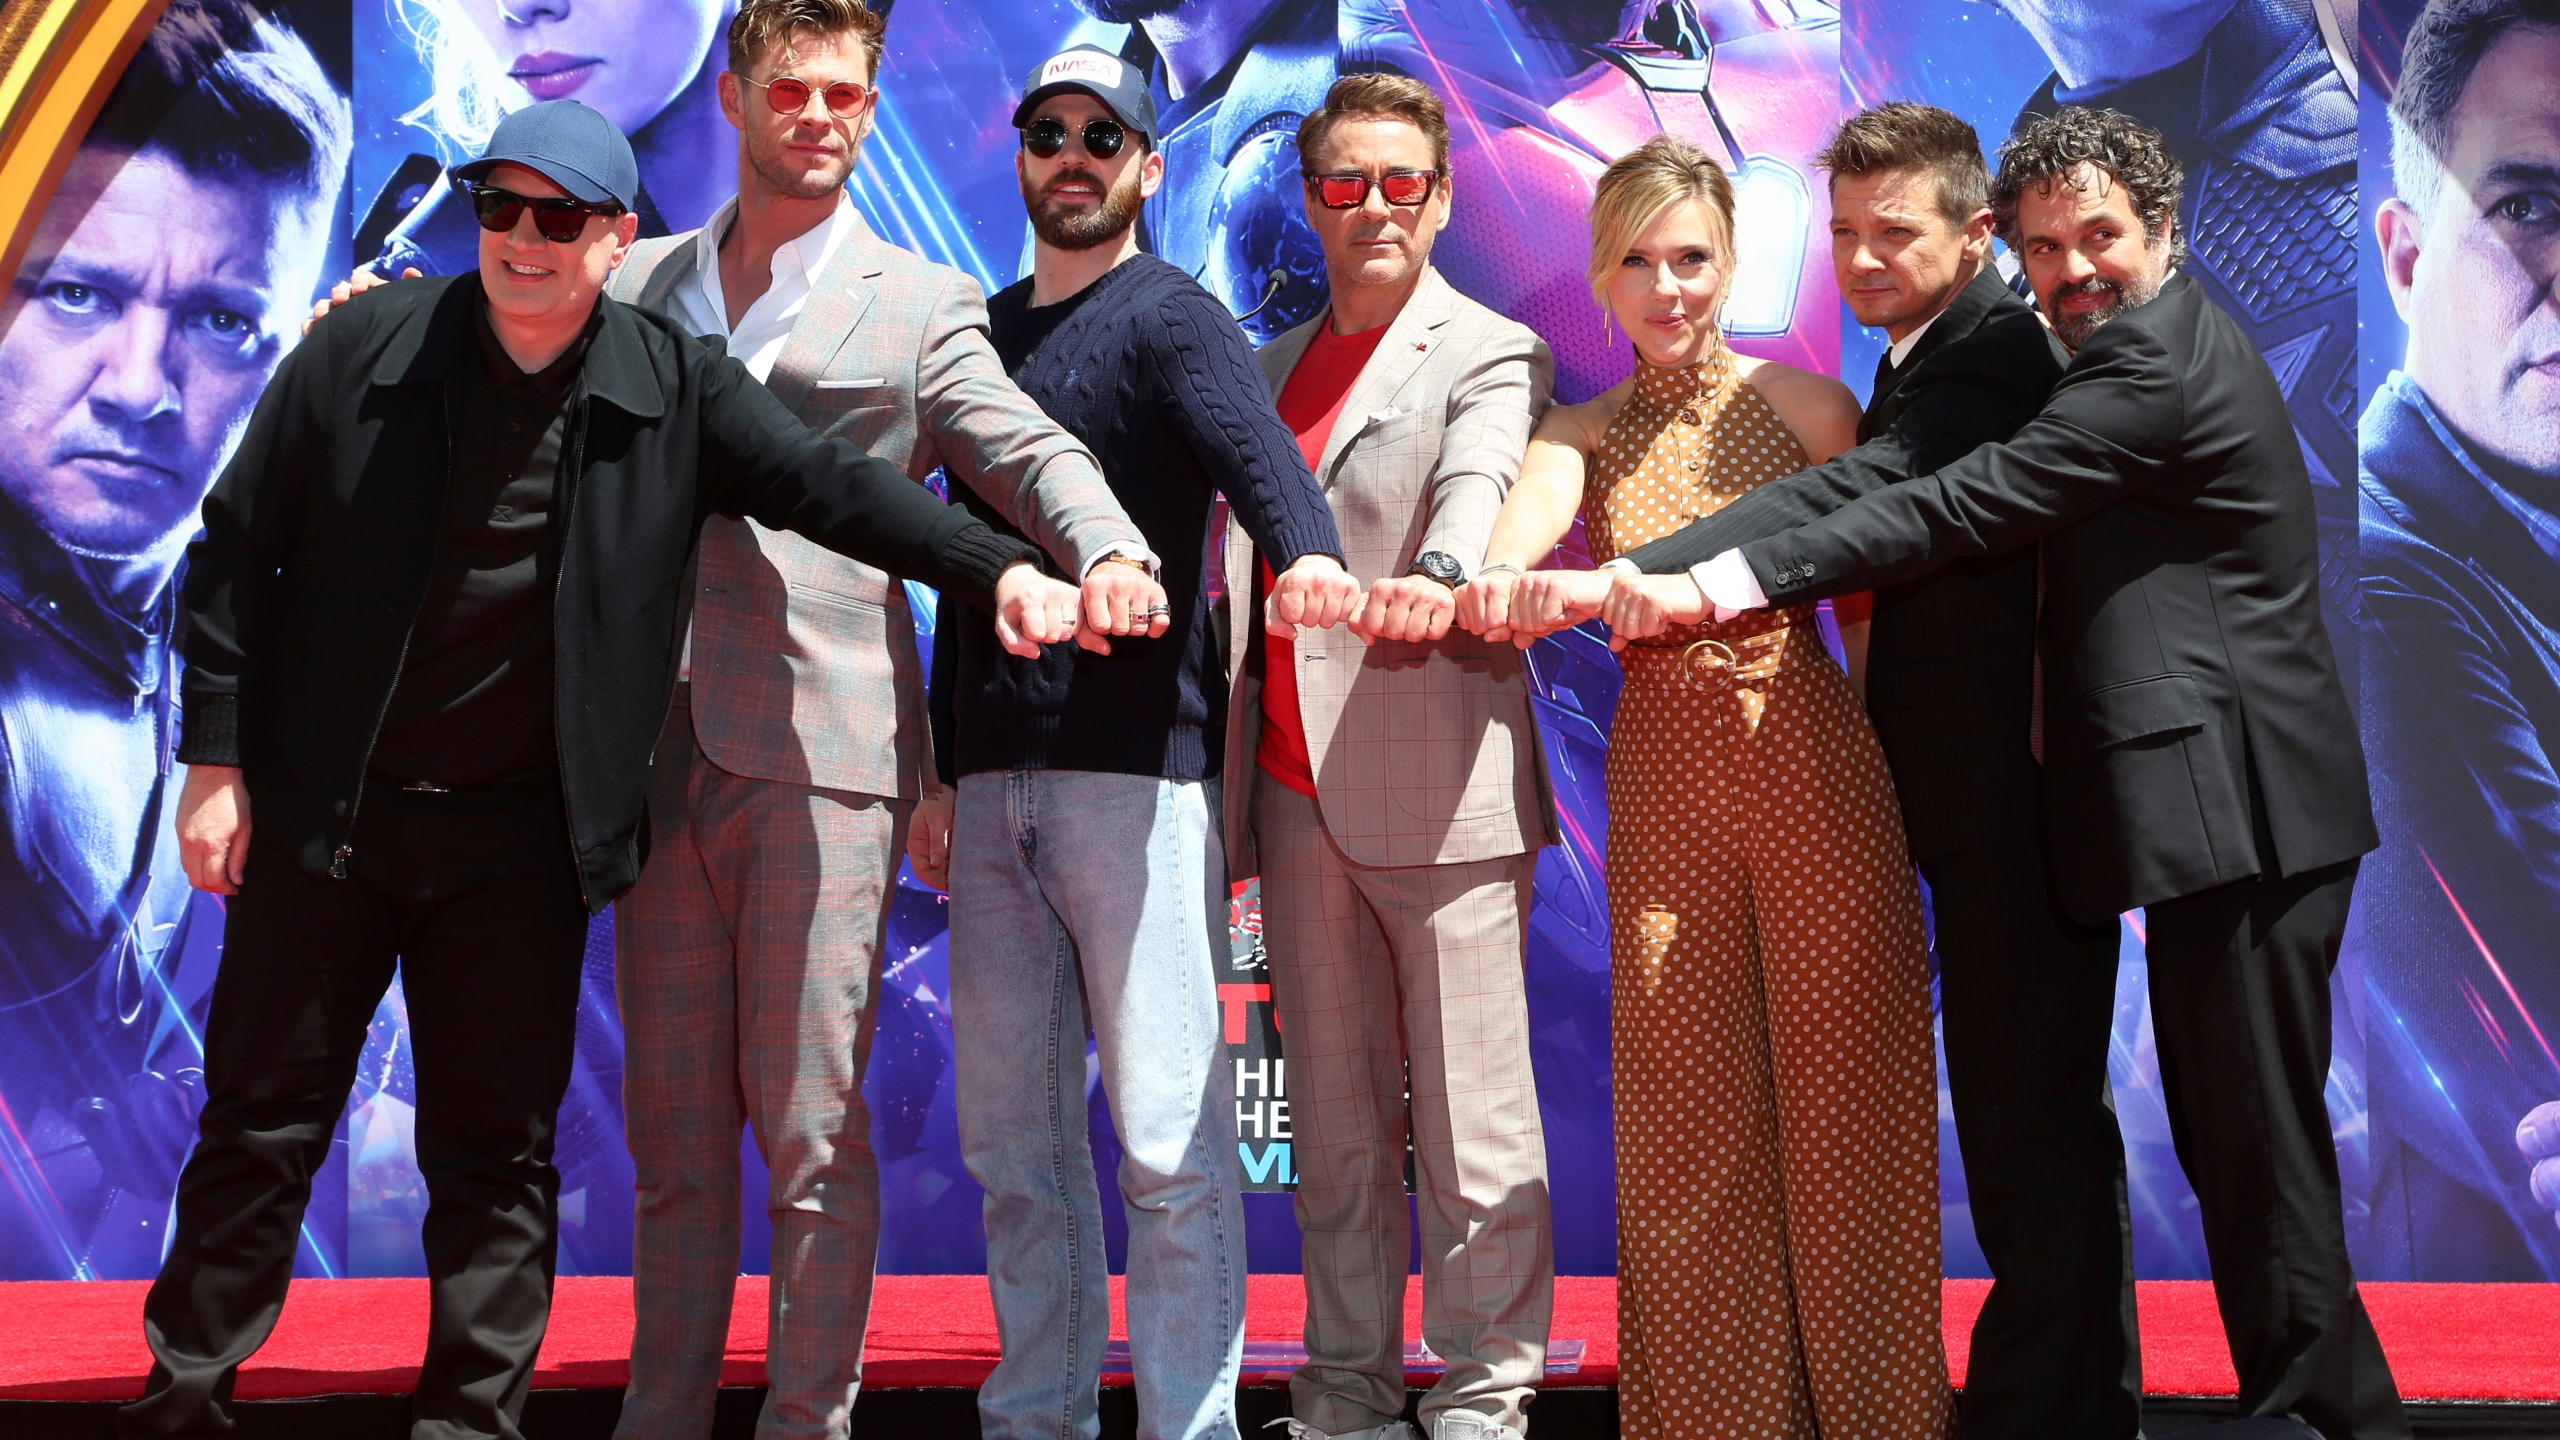 The_Cast_of__Avengers__End_Game__Hand_and_Footprint_Ceremony_76329-159532.jpg30859133